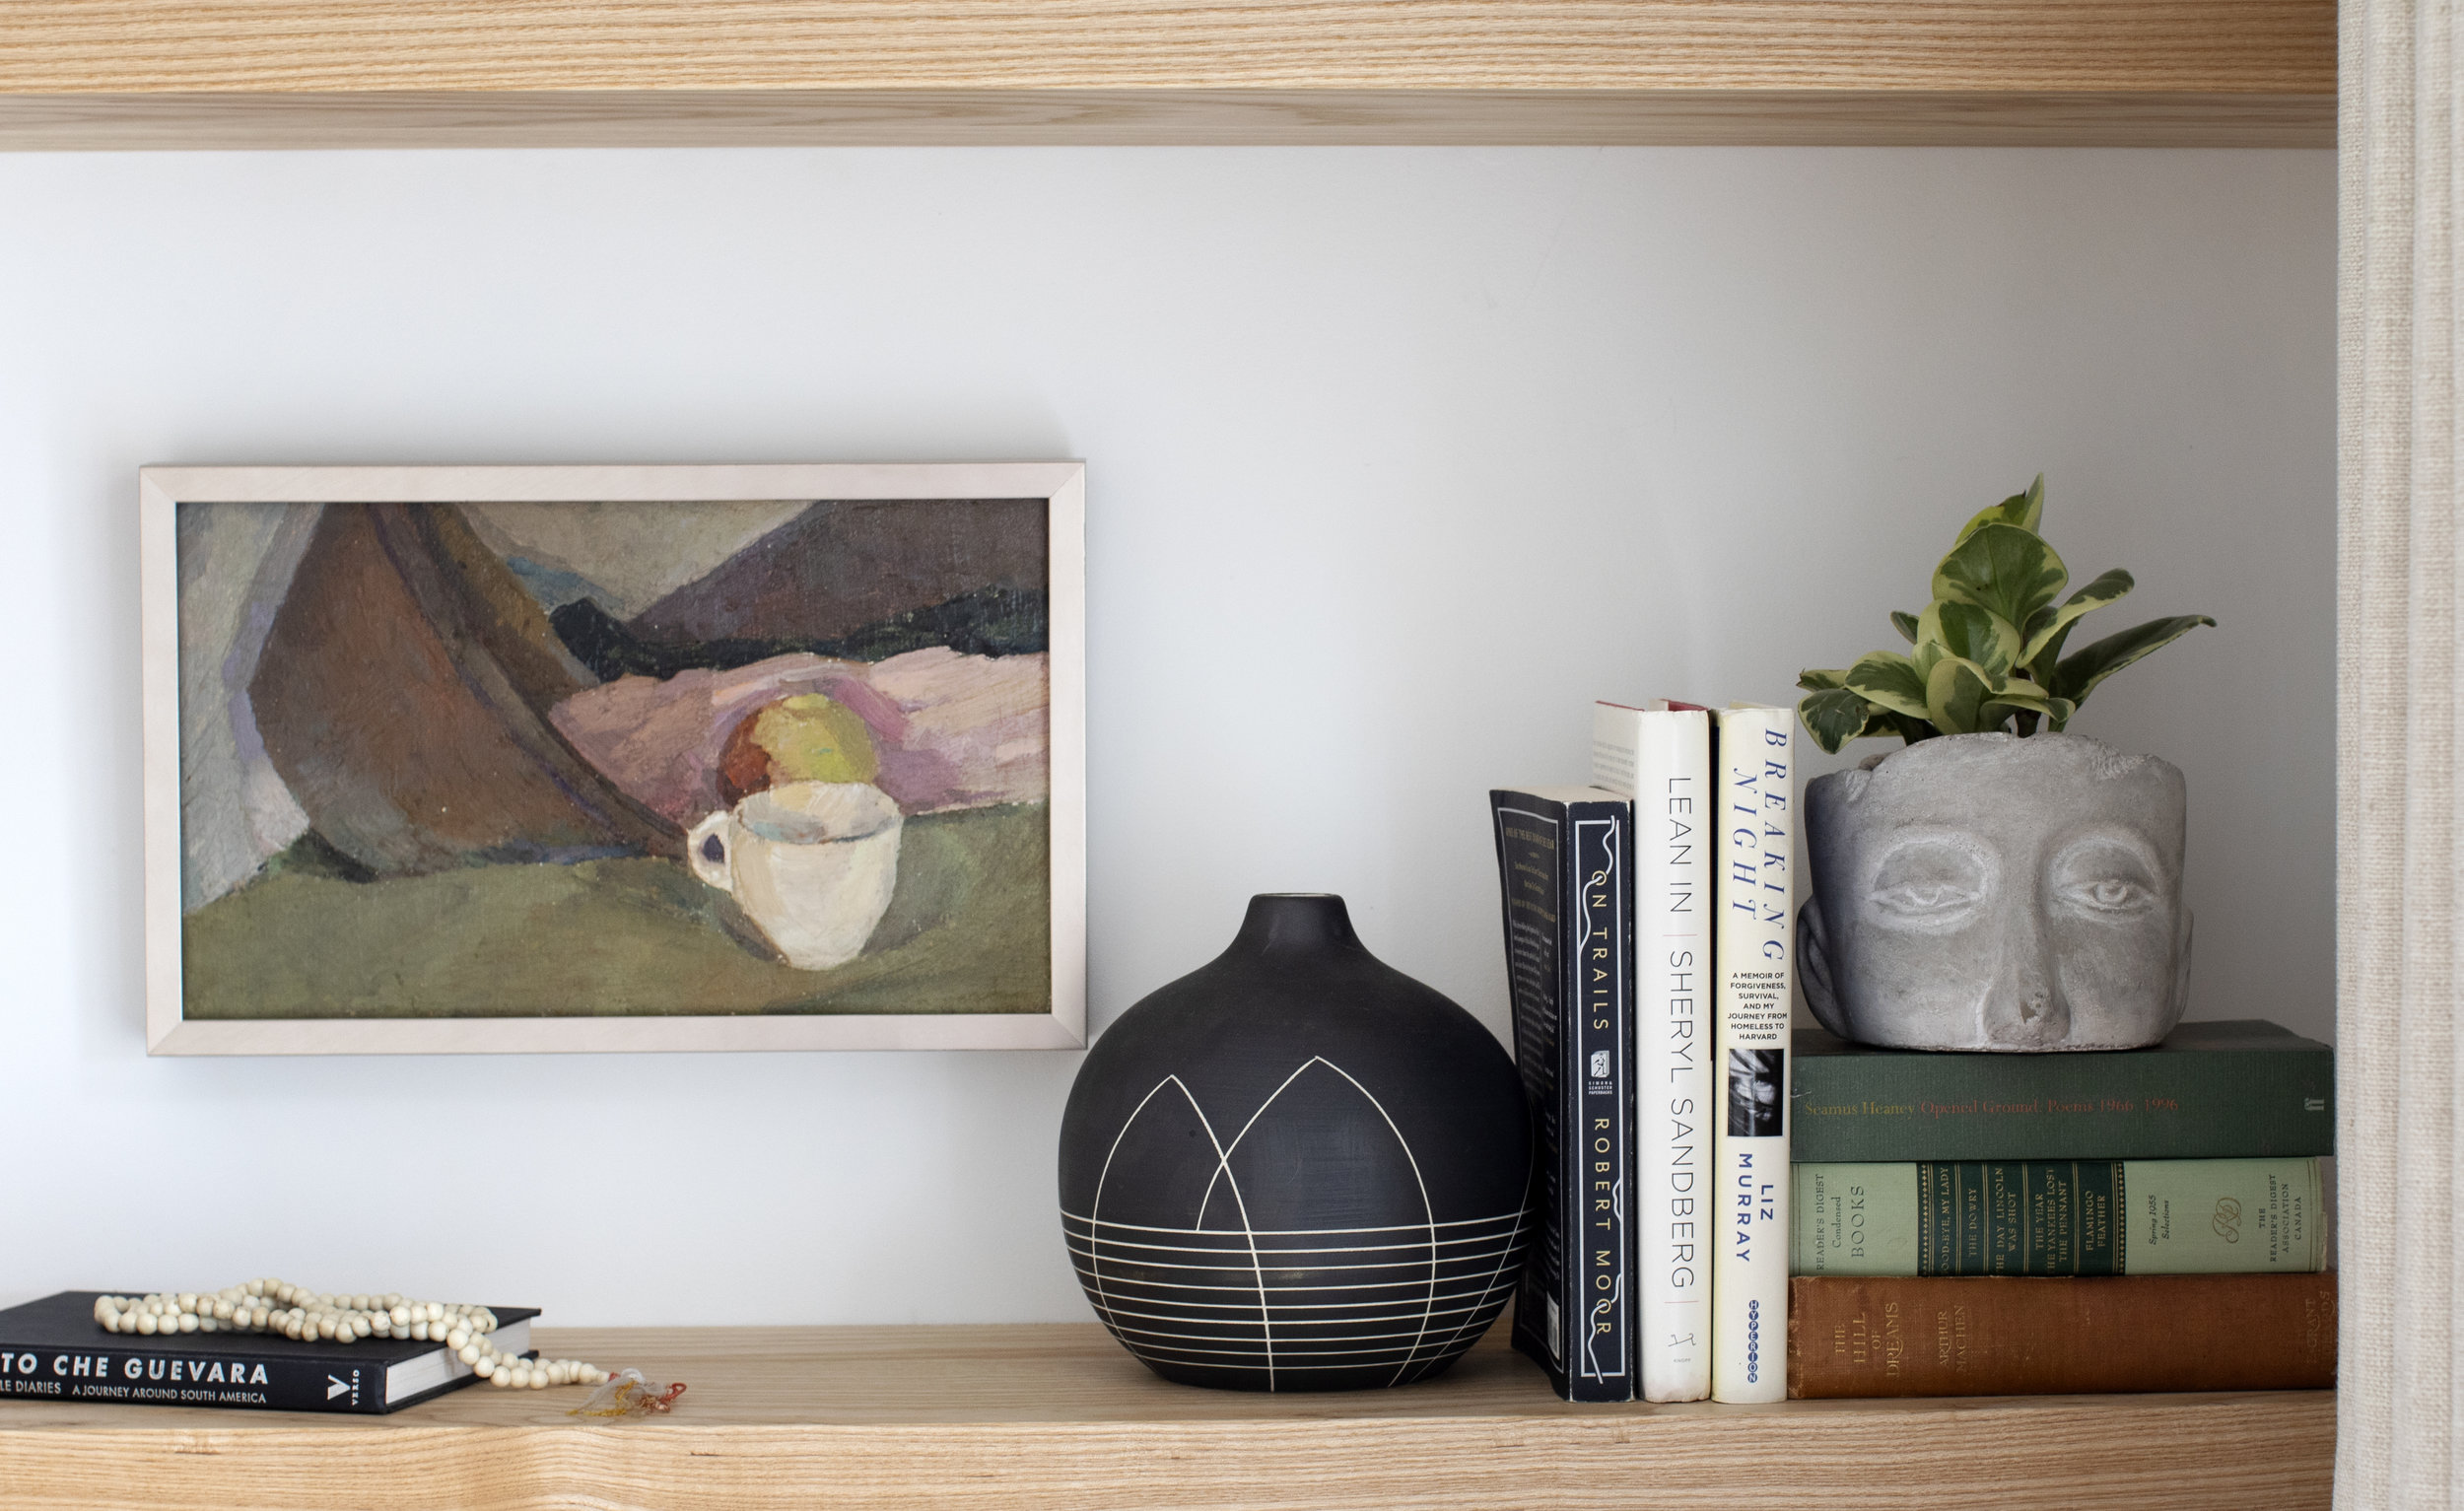 A shelf in the living room displaying a vase shaped like a face, a black decorative jar, some books and a painting of a coffee cup